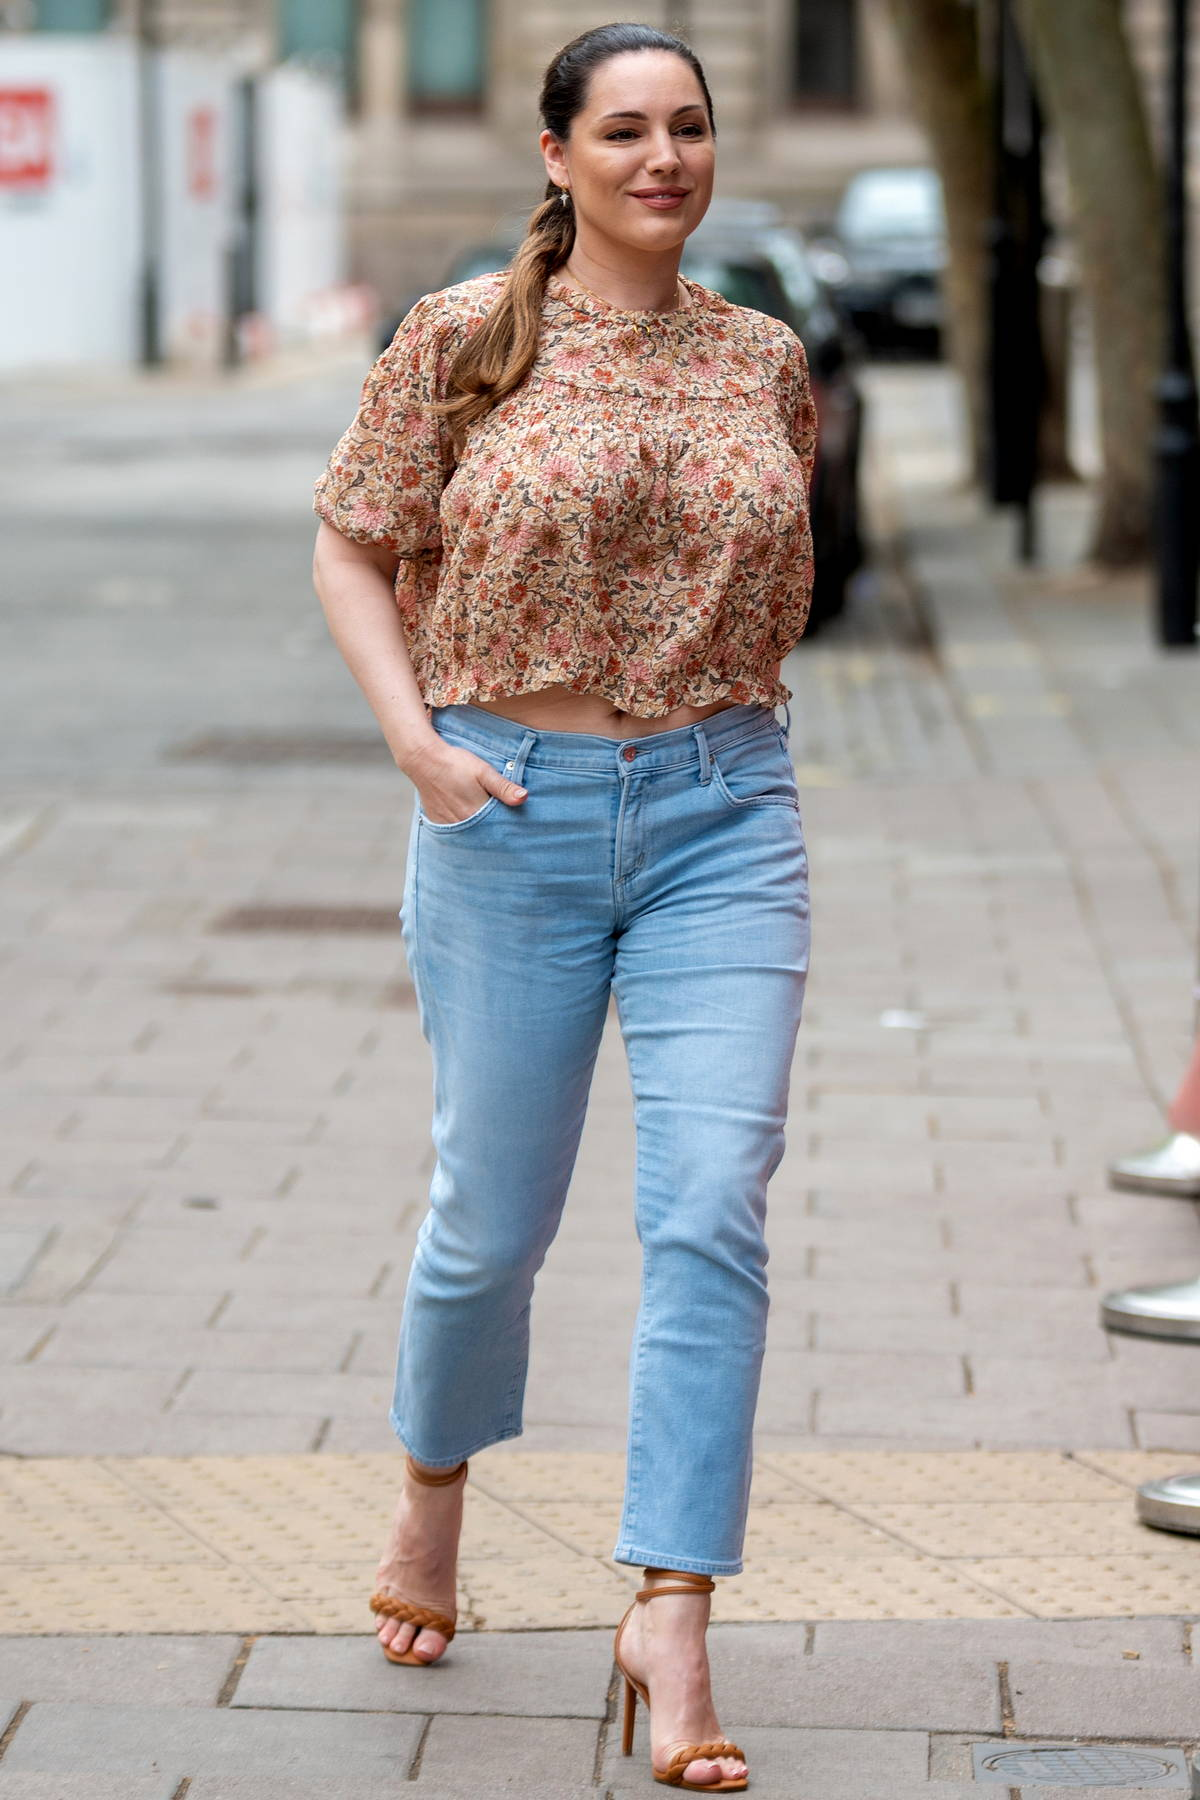 Kelly Brook looks pretty in a floral print top as she arrives at Global Radio Studios in London, UK